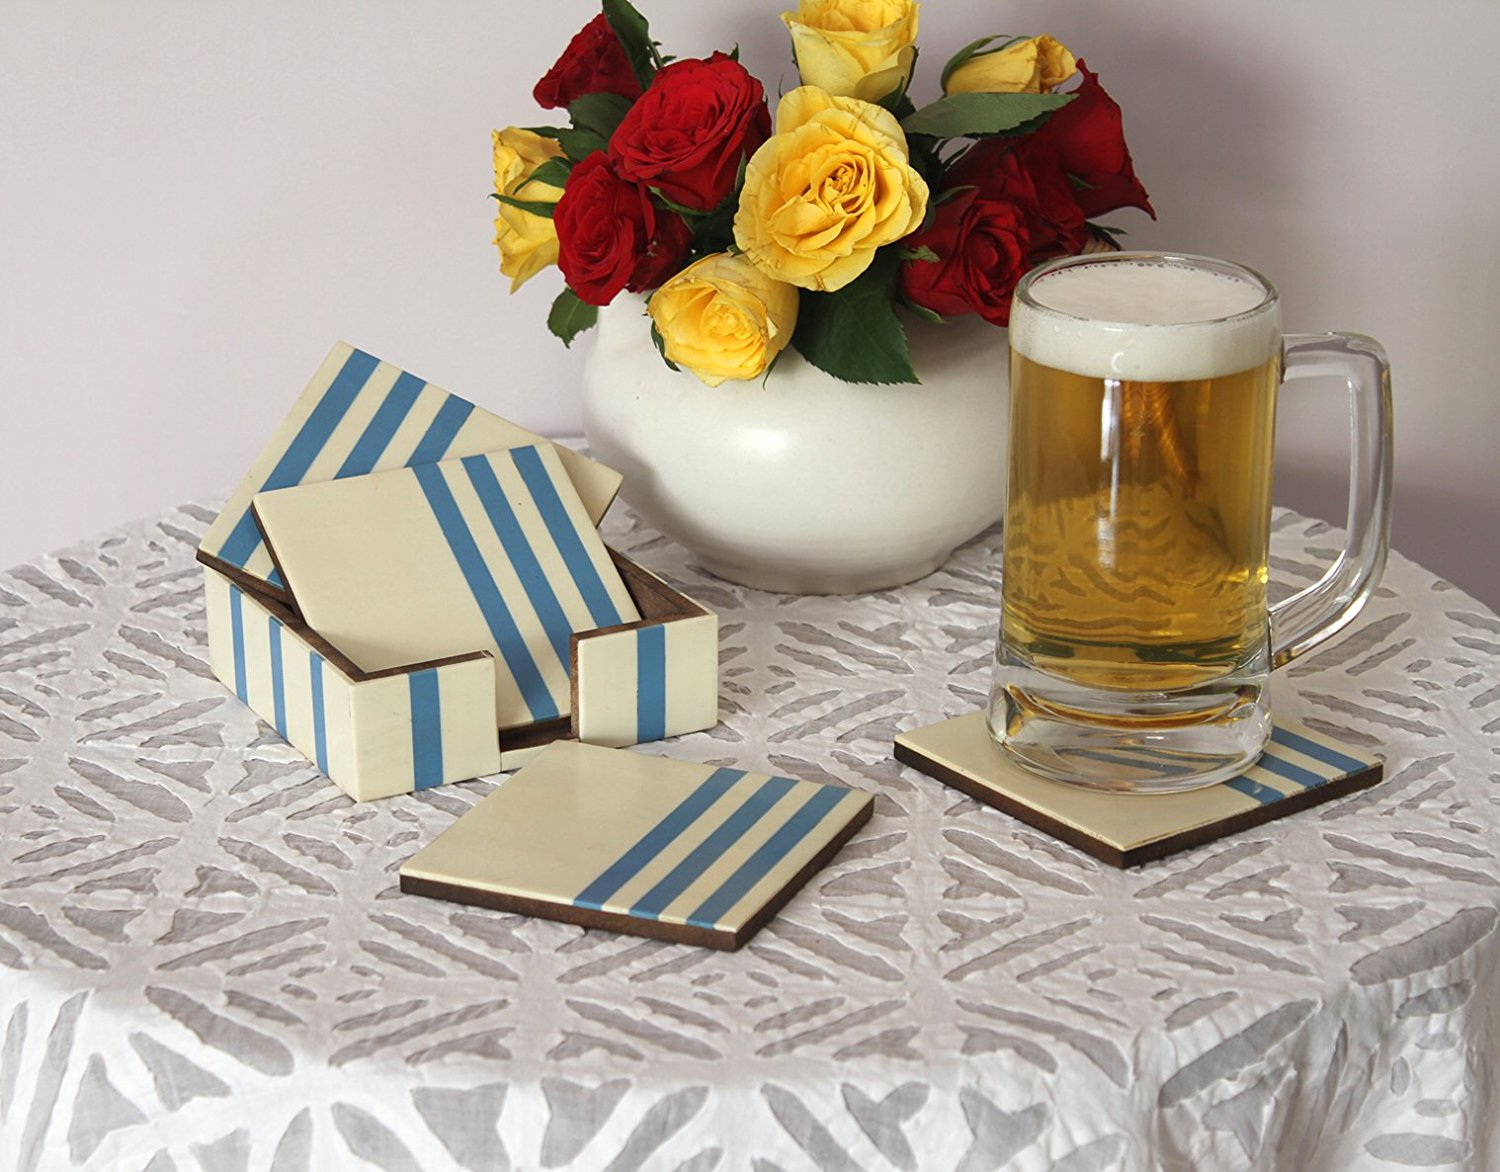 Sale on Drink Coasters - Coasters Set of 4 Drink Beverage Wood Coasters & Holder White & Blue Wooden Square Coaster Dining Table Decorations